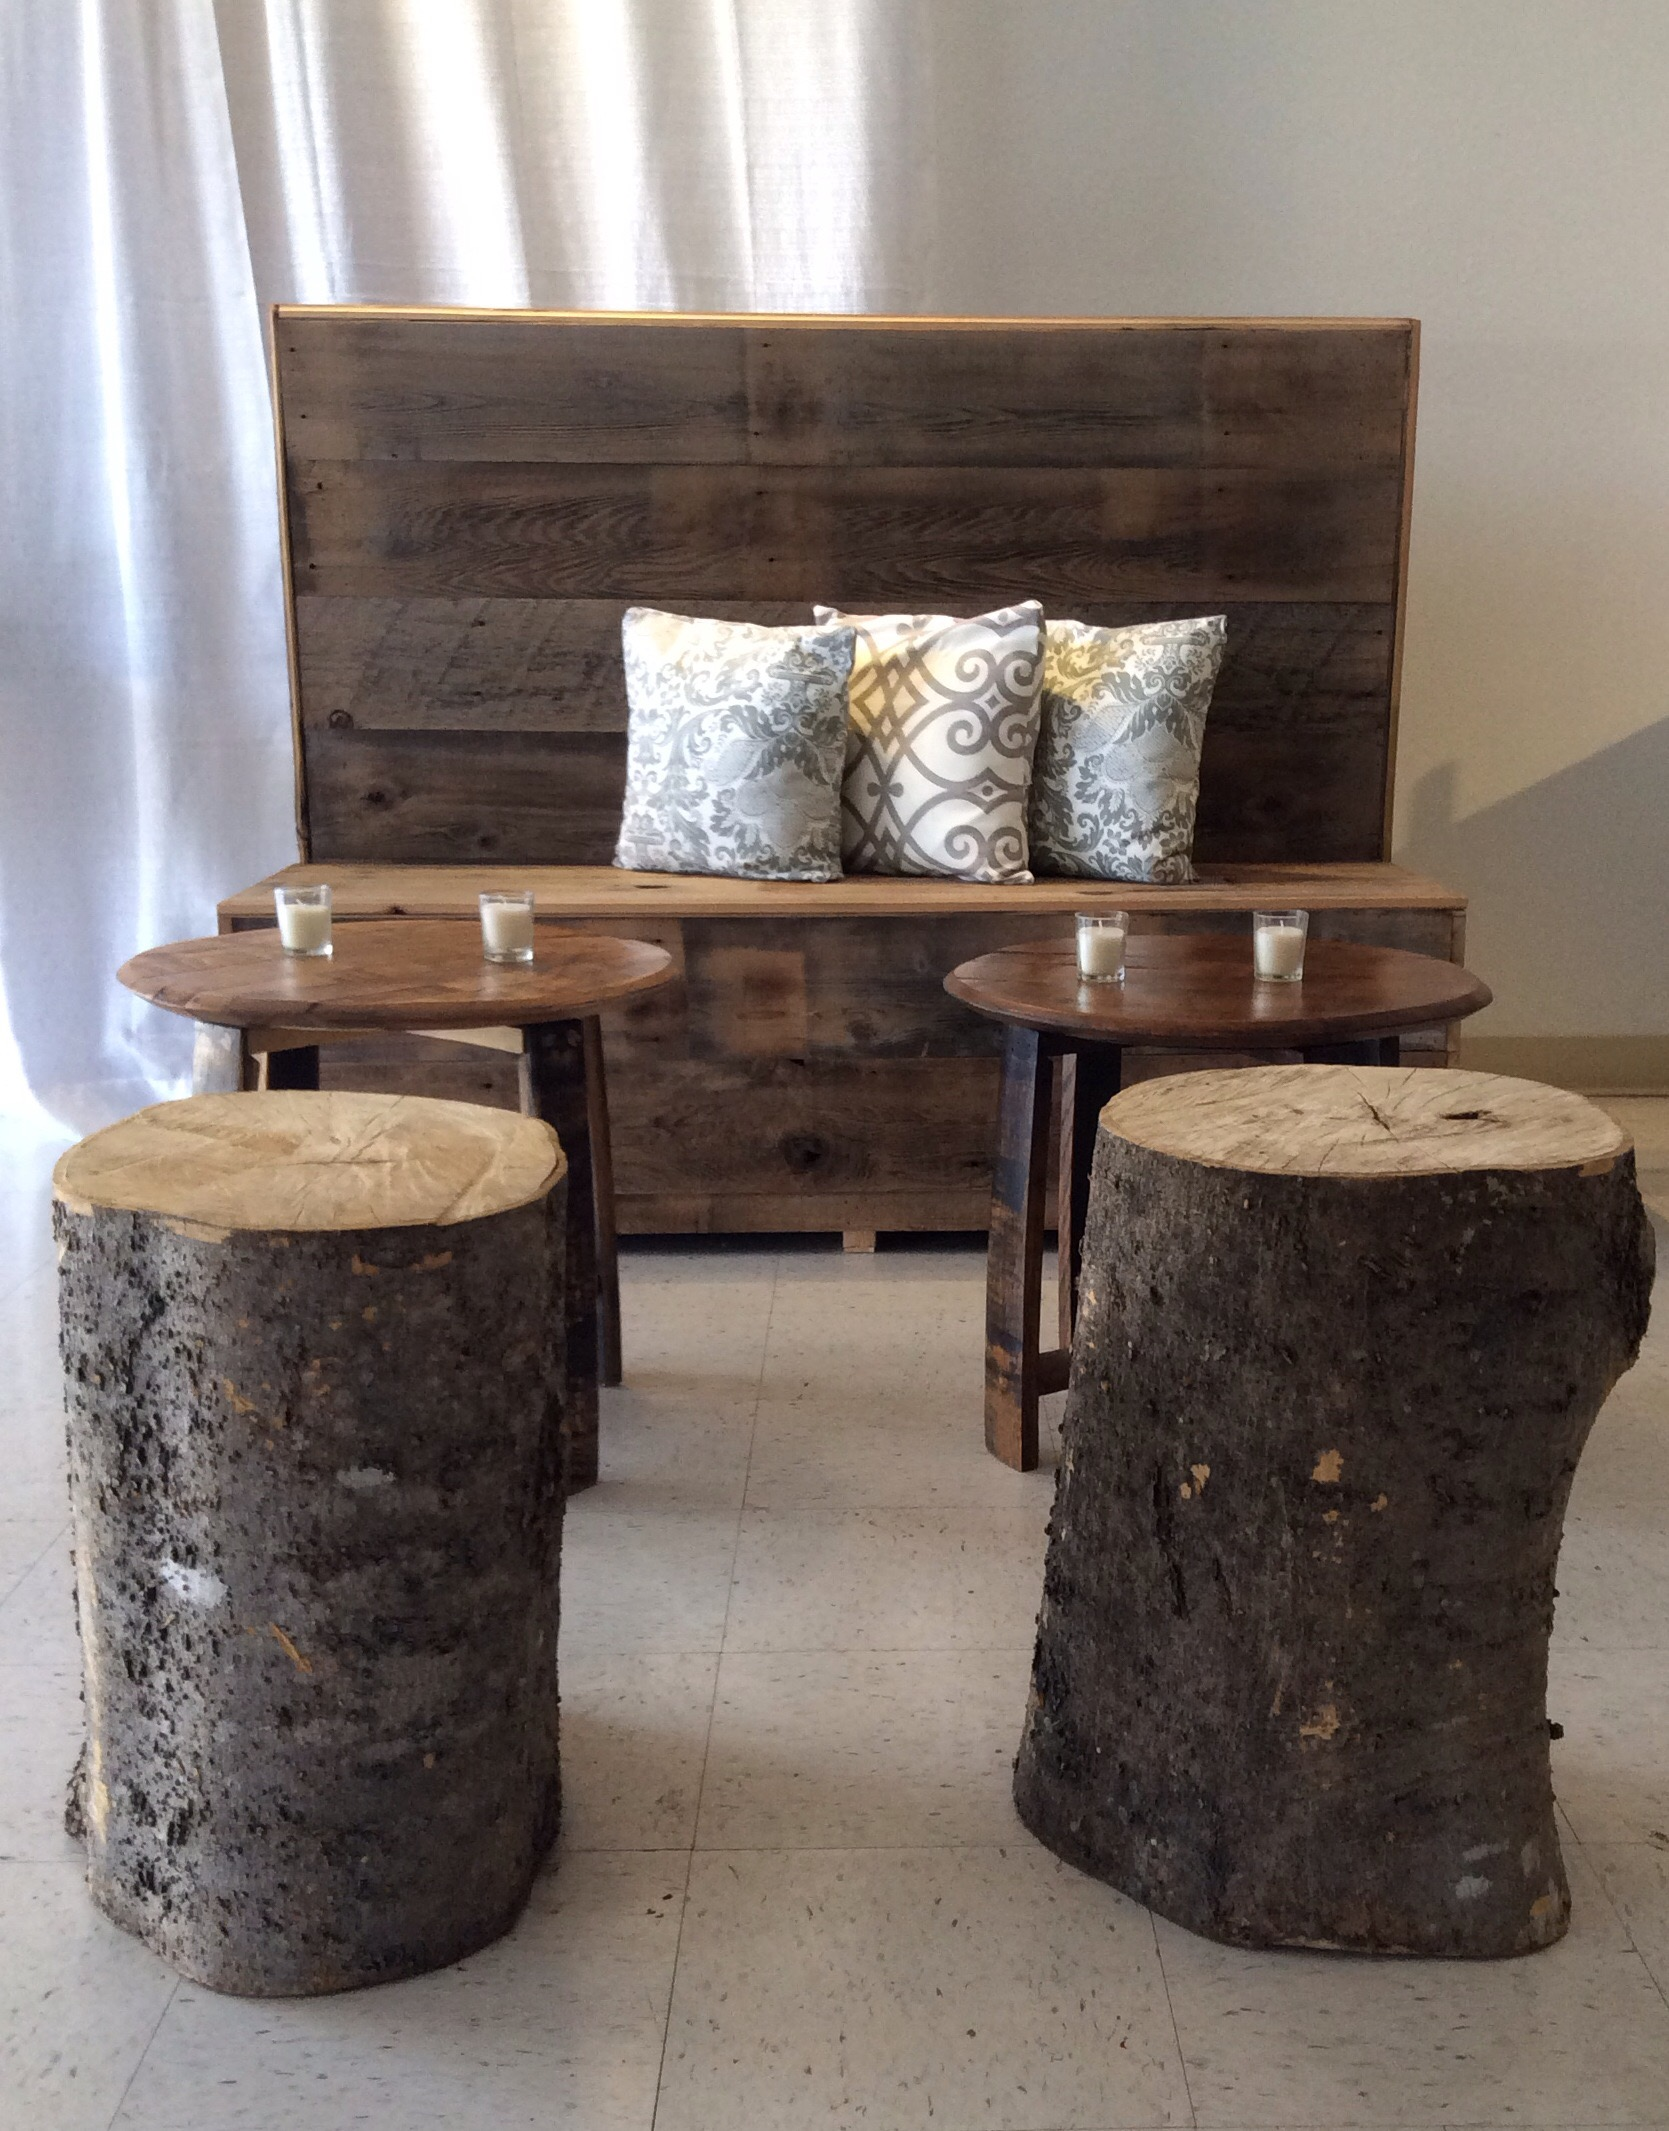 Rustic Bench with Coffee Table and Tree Trunk Seats